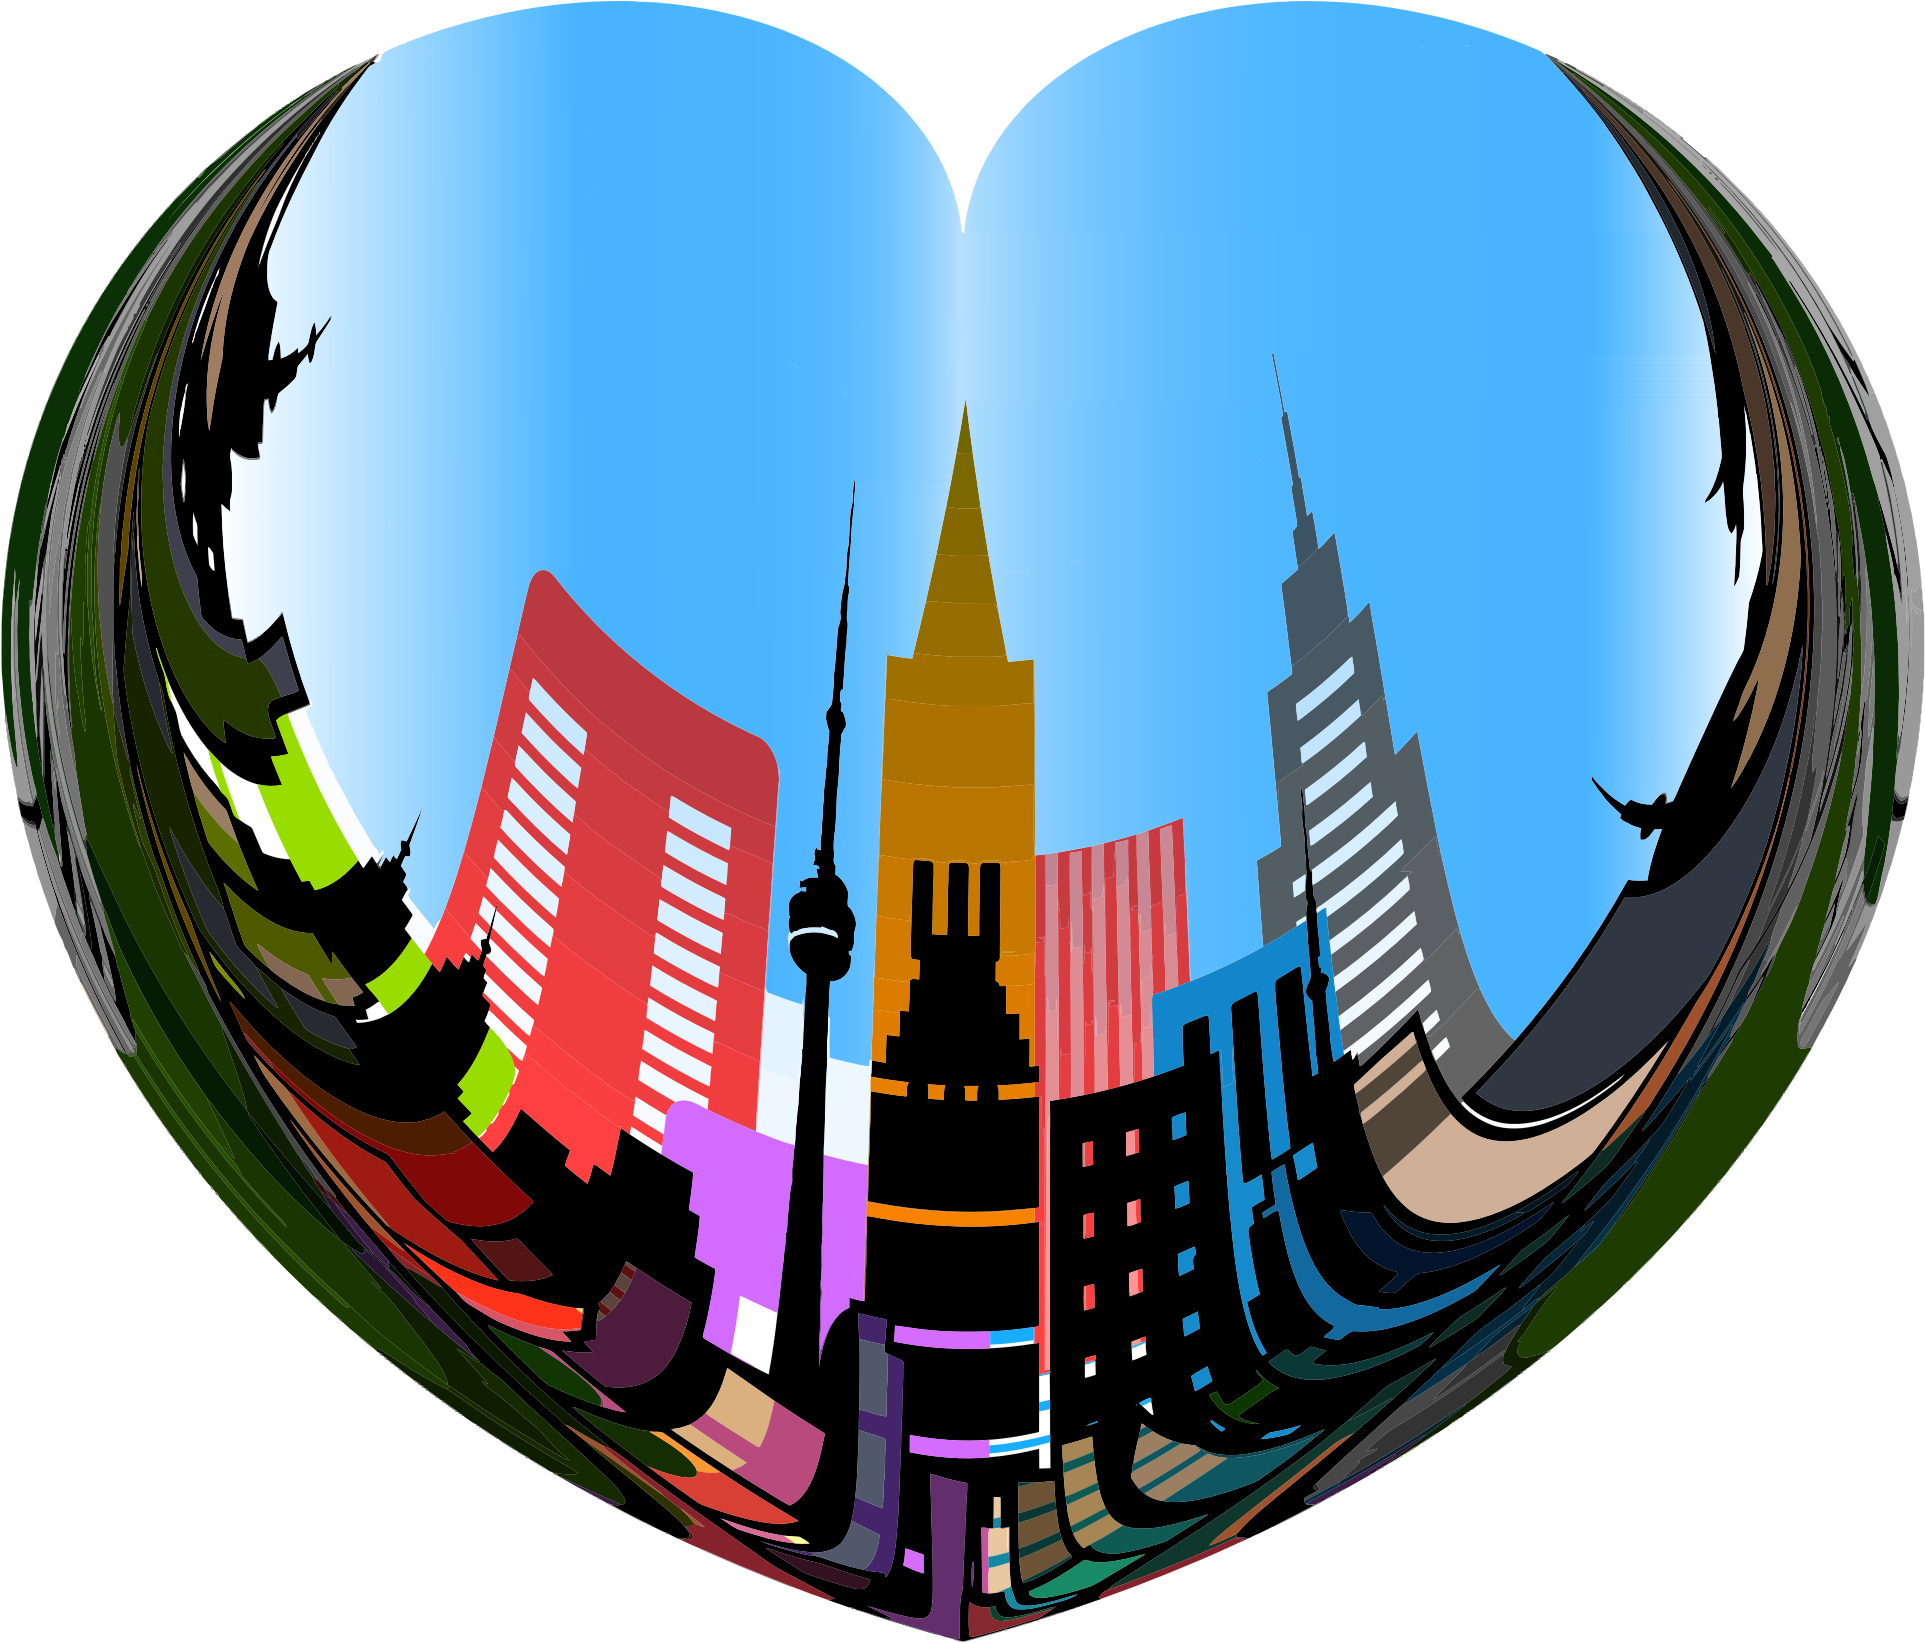 Clipart of the heart svg library download Clipart - Heart Of The City svg library download